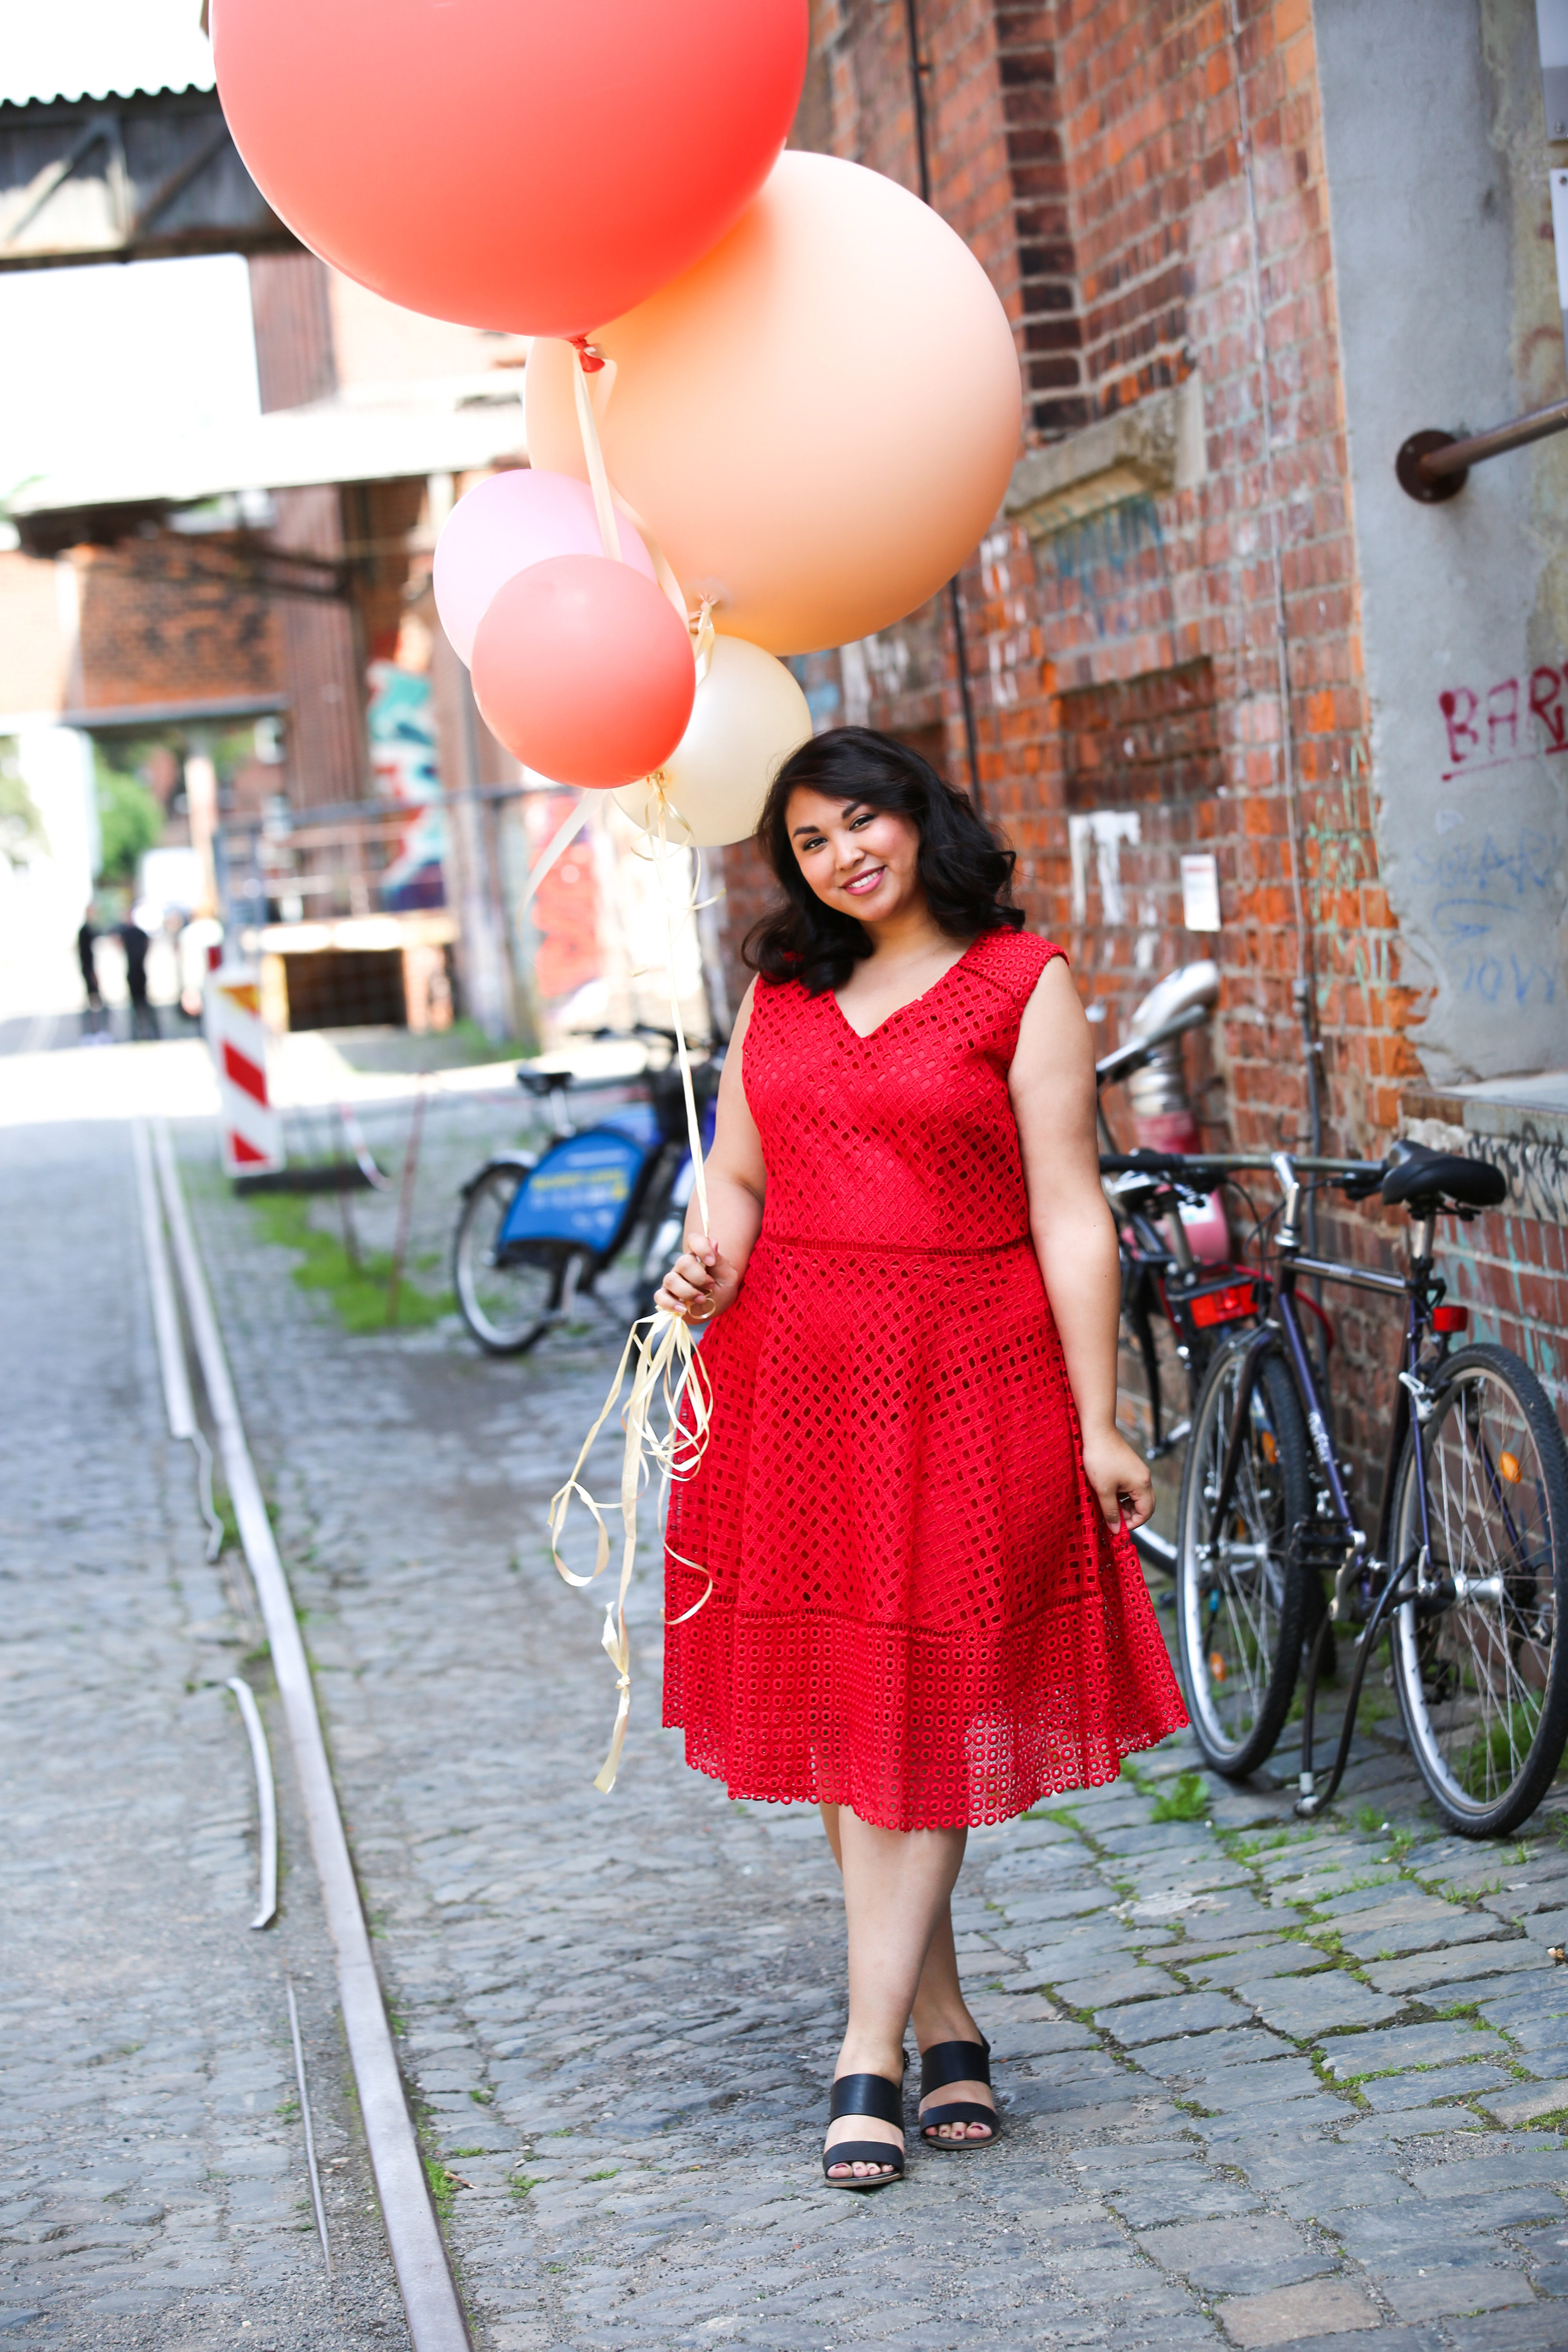 Tiffany in Red beim Wundercurves Shooting